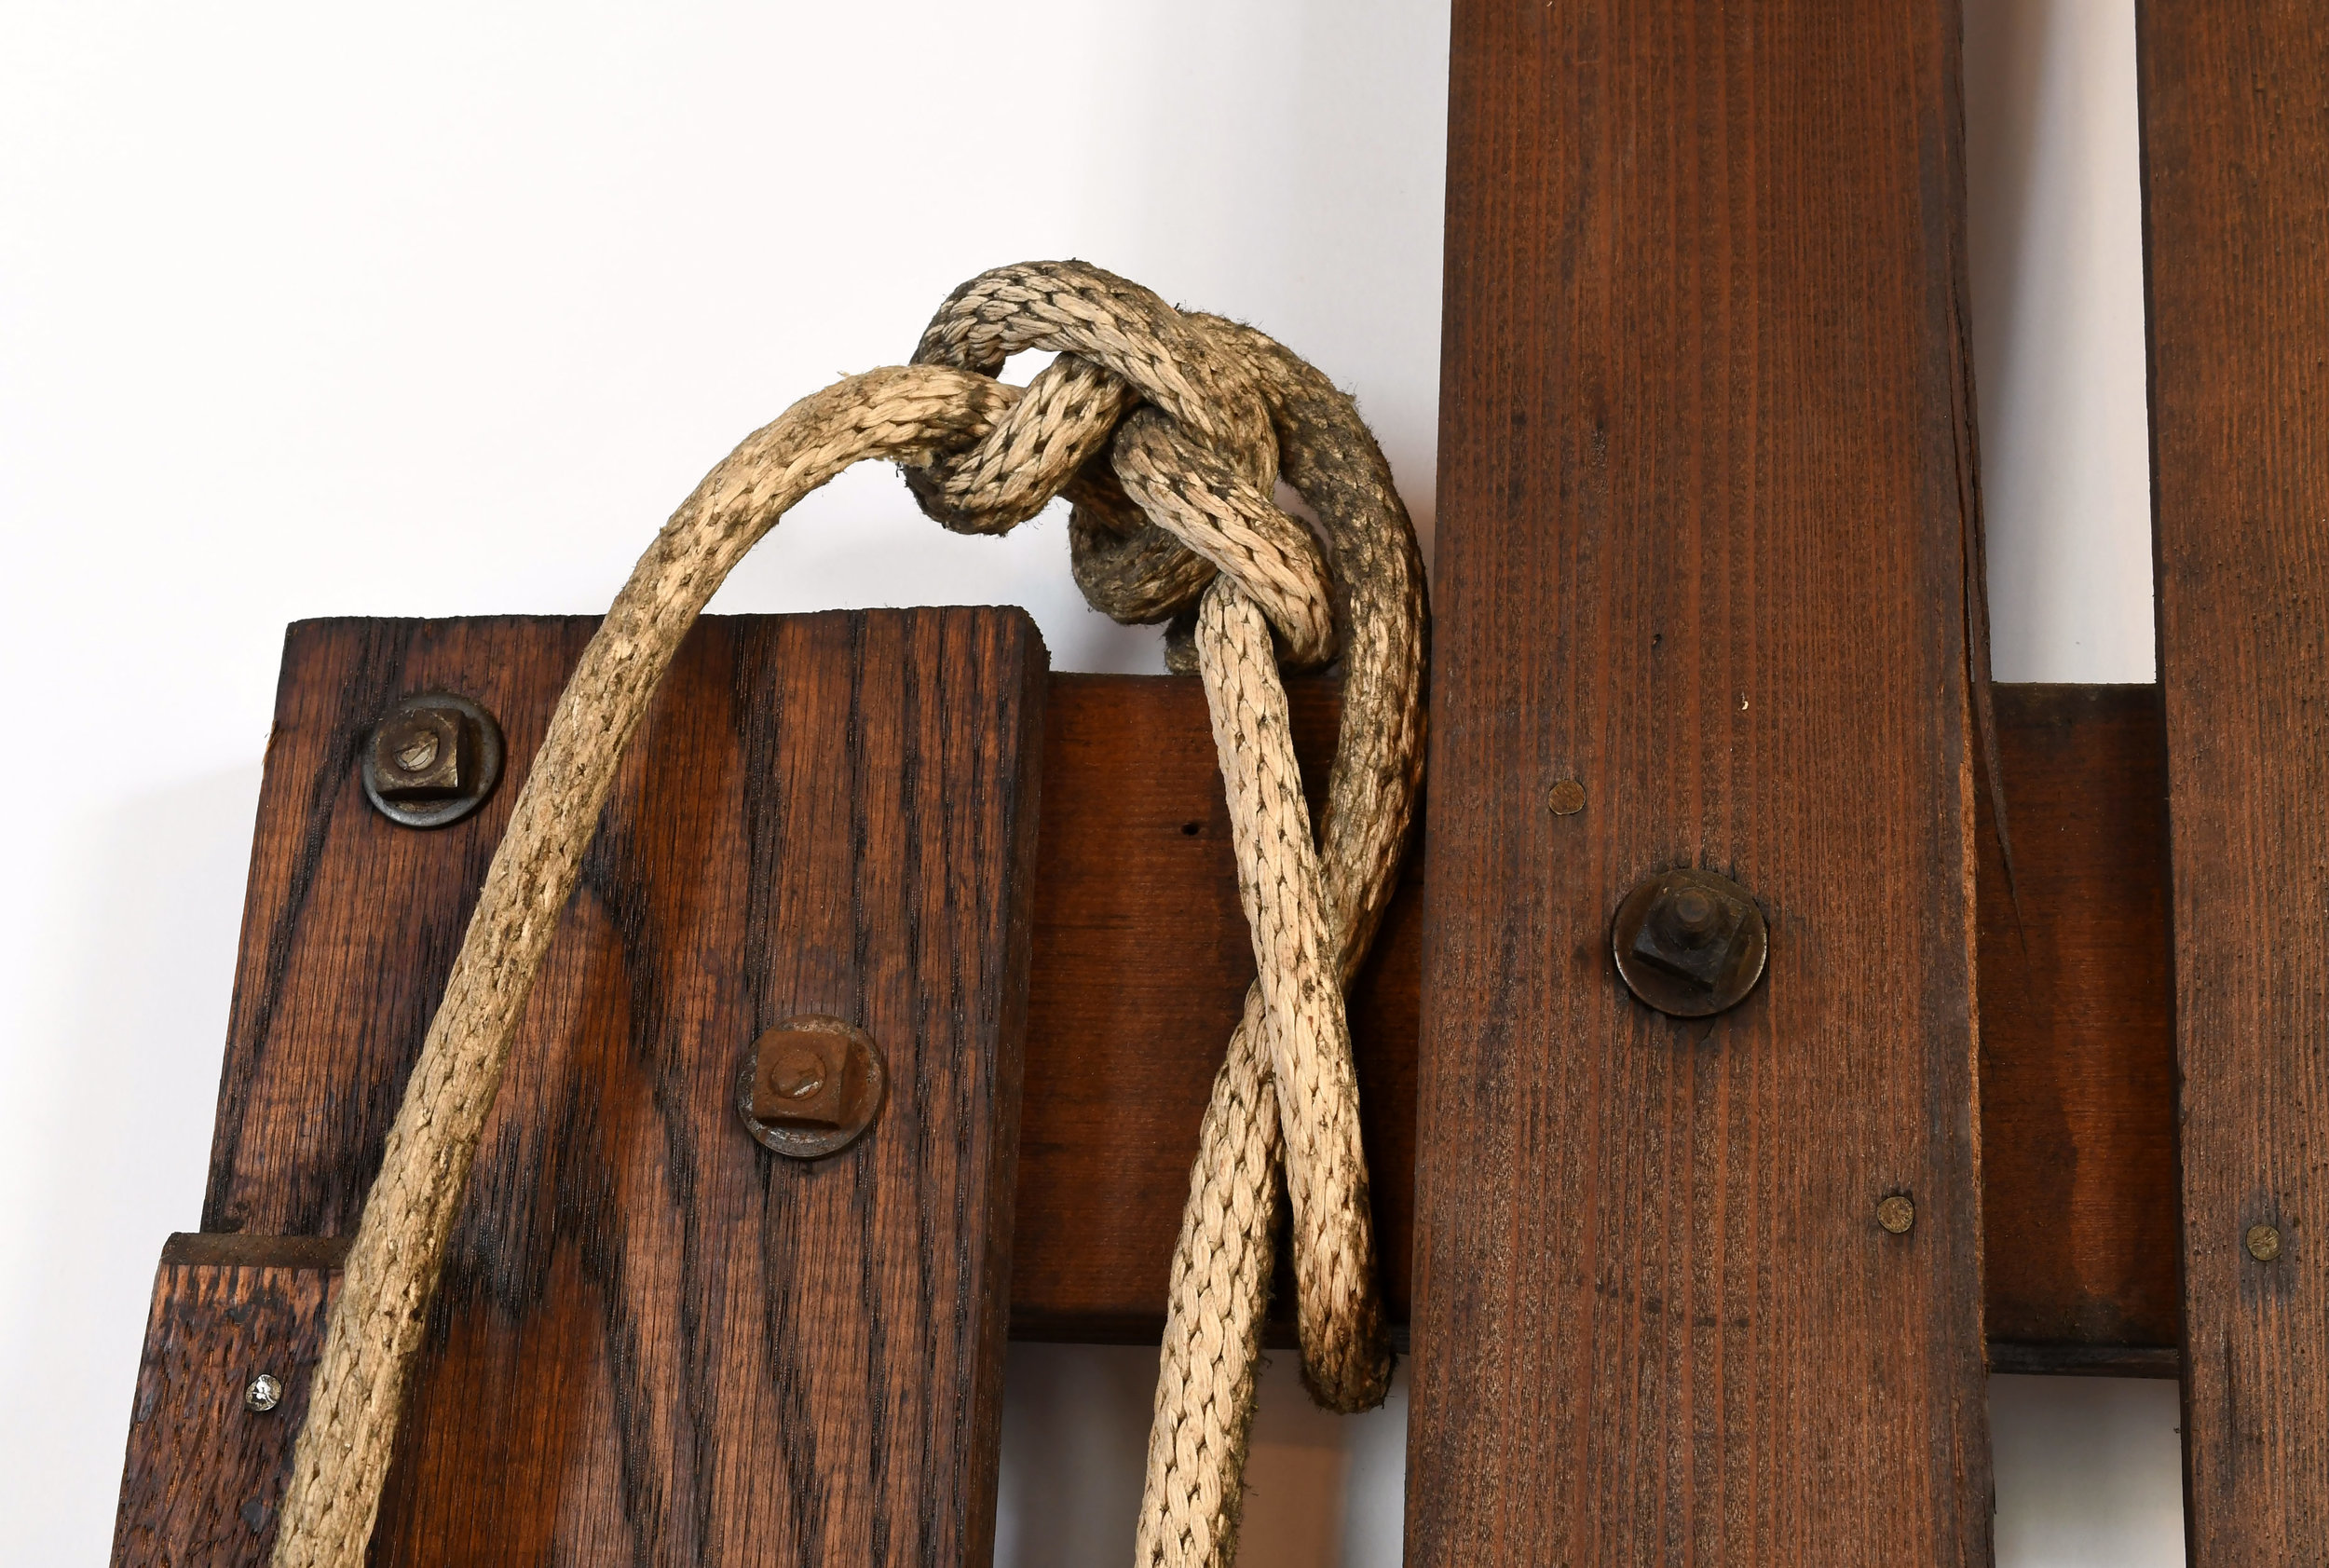 47425-wood-elevator-gate-rope-detail.jpg